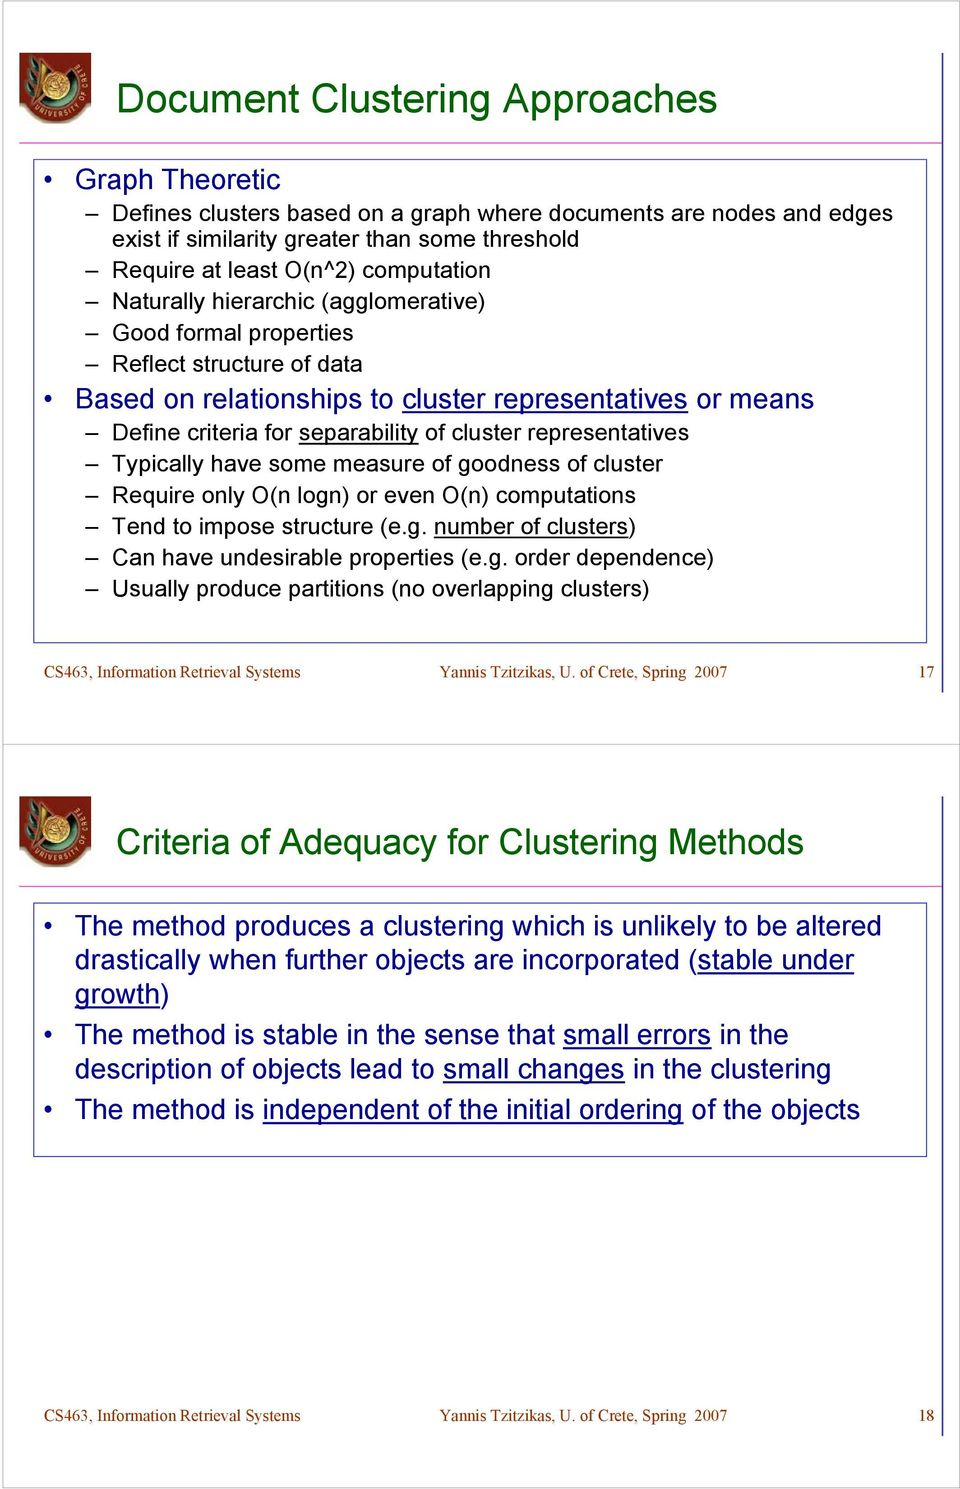 representatives Typically have some measure of goodness of cluster Require only O(n logn) or even O(n) computations Tend to impose structure (e.g. number of clusters) Can have undesirable properties (e.